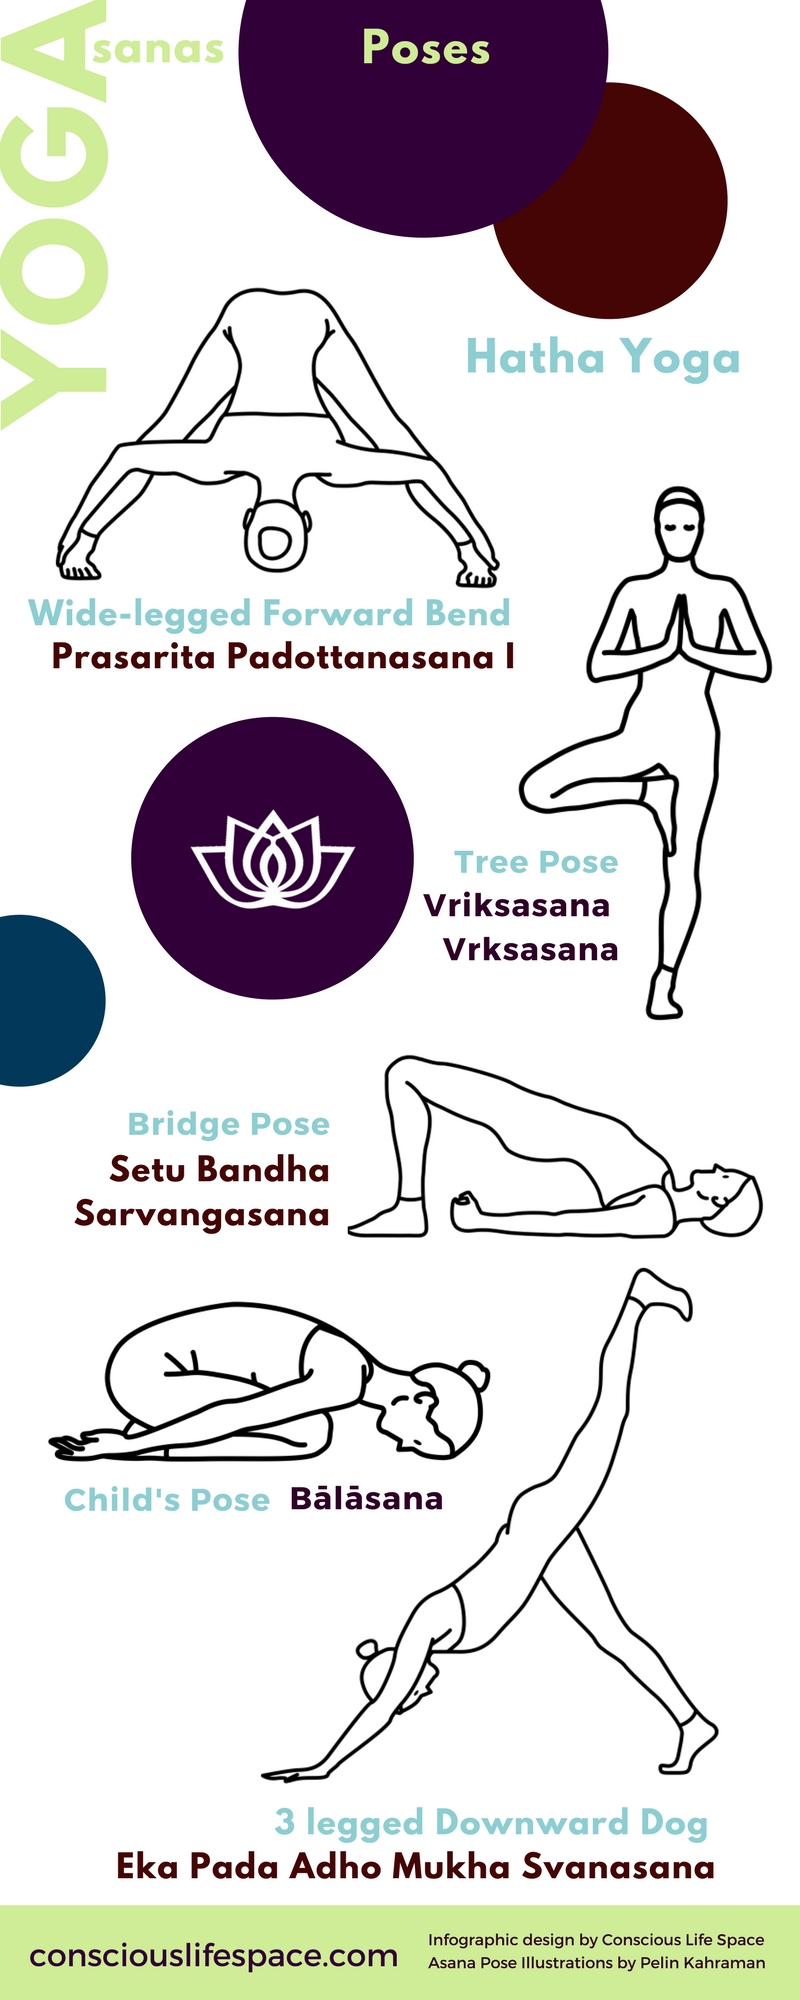 Introduction To Asanas 5 Yoga Poses Infographic By Amy Marie Adams Conscious Life Space Medium